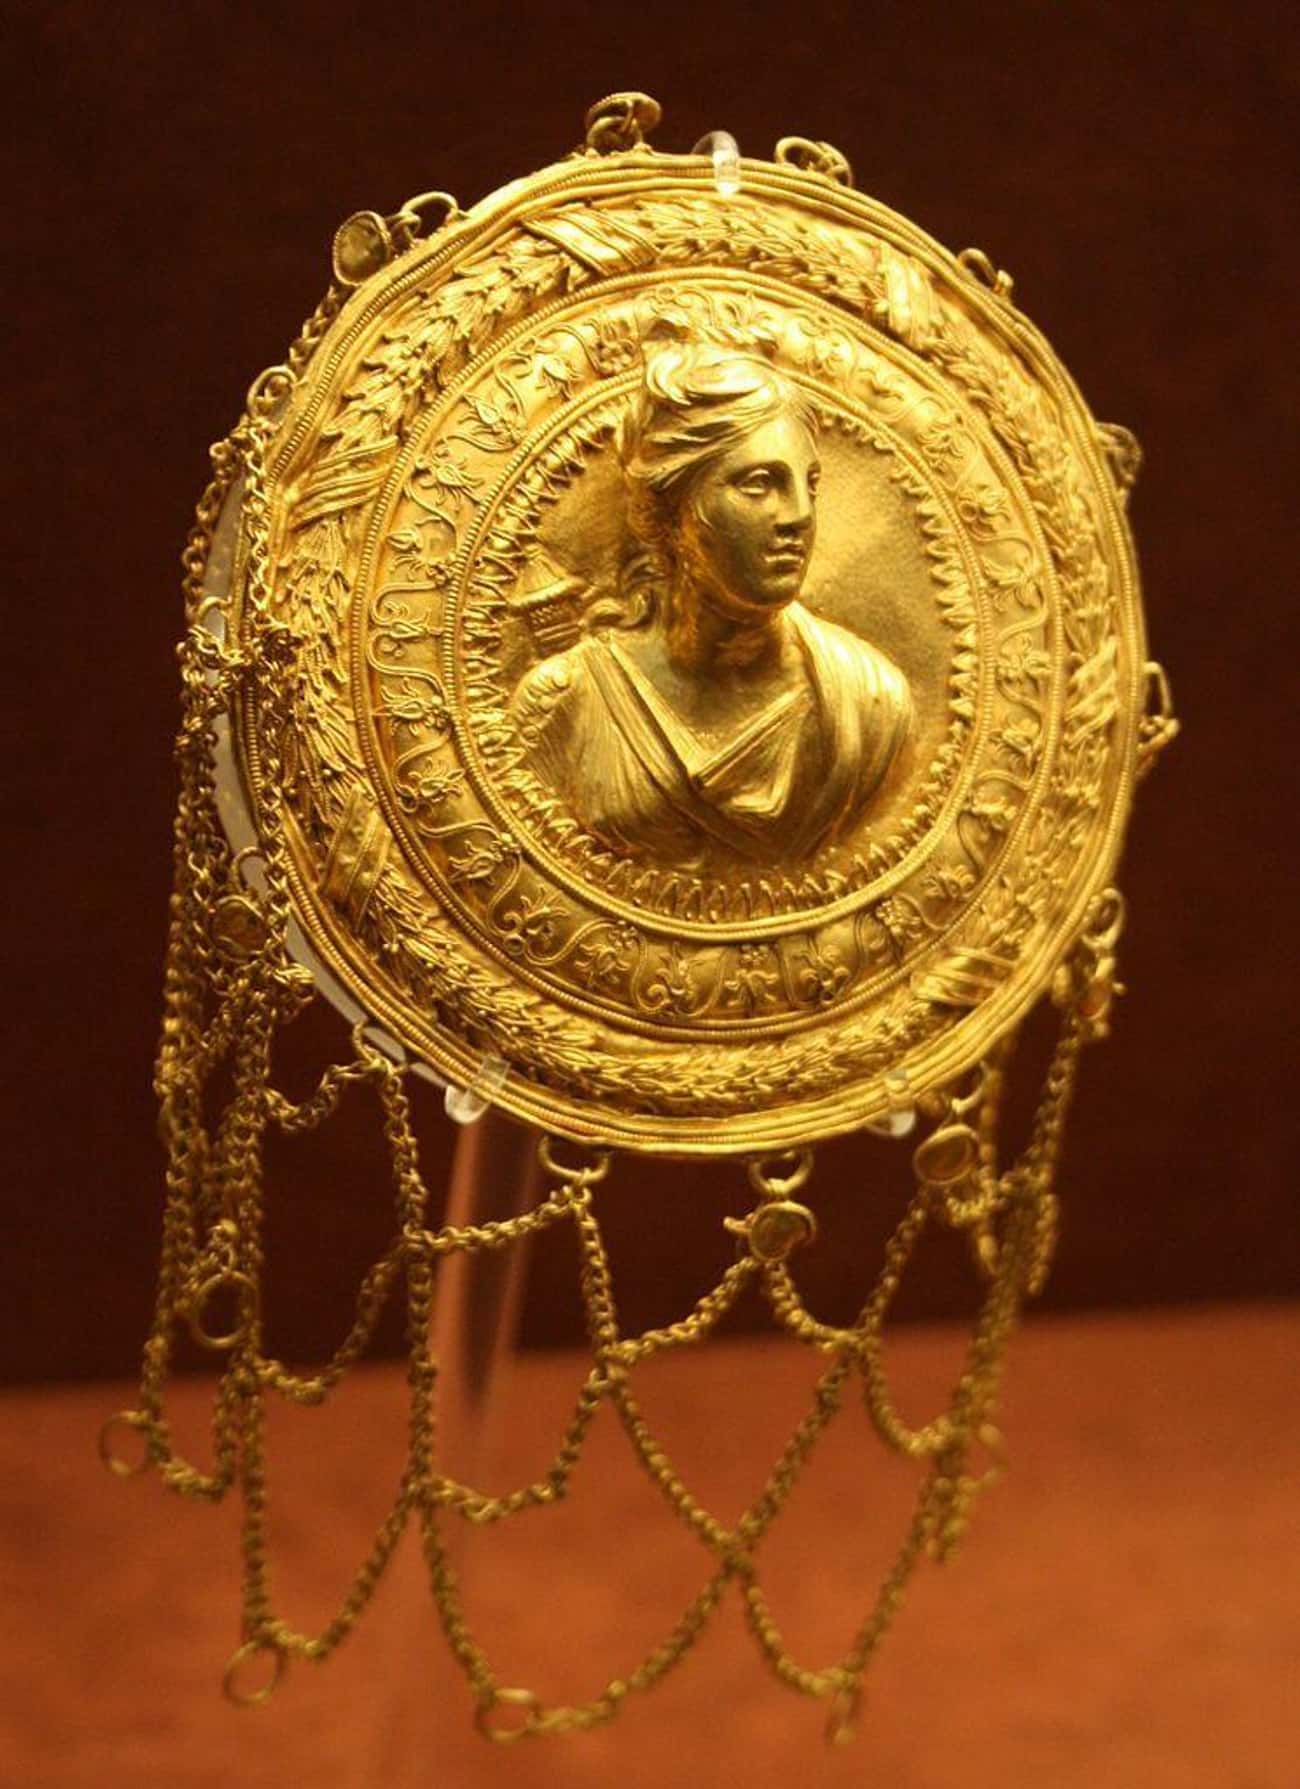 Golden Hairnet Featuring The Goddess Artemis (c. 3rd Century BC)